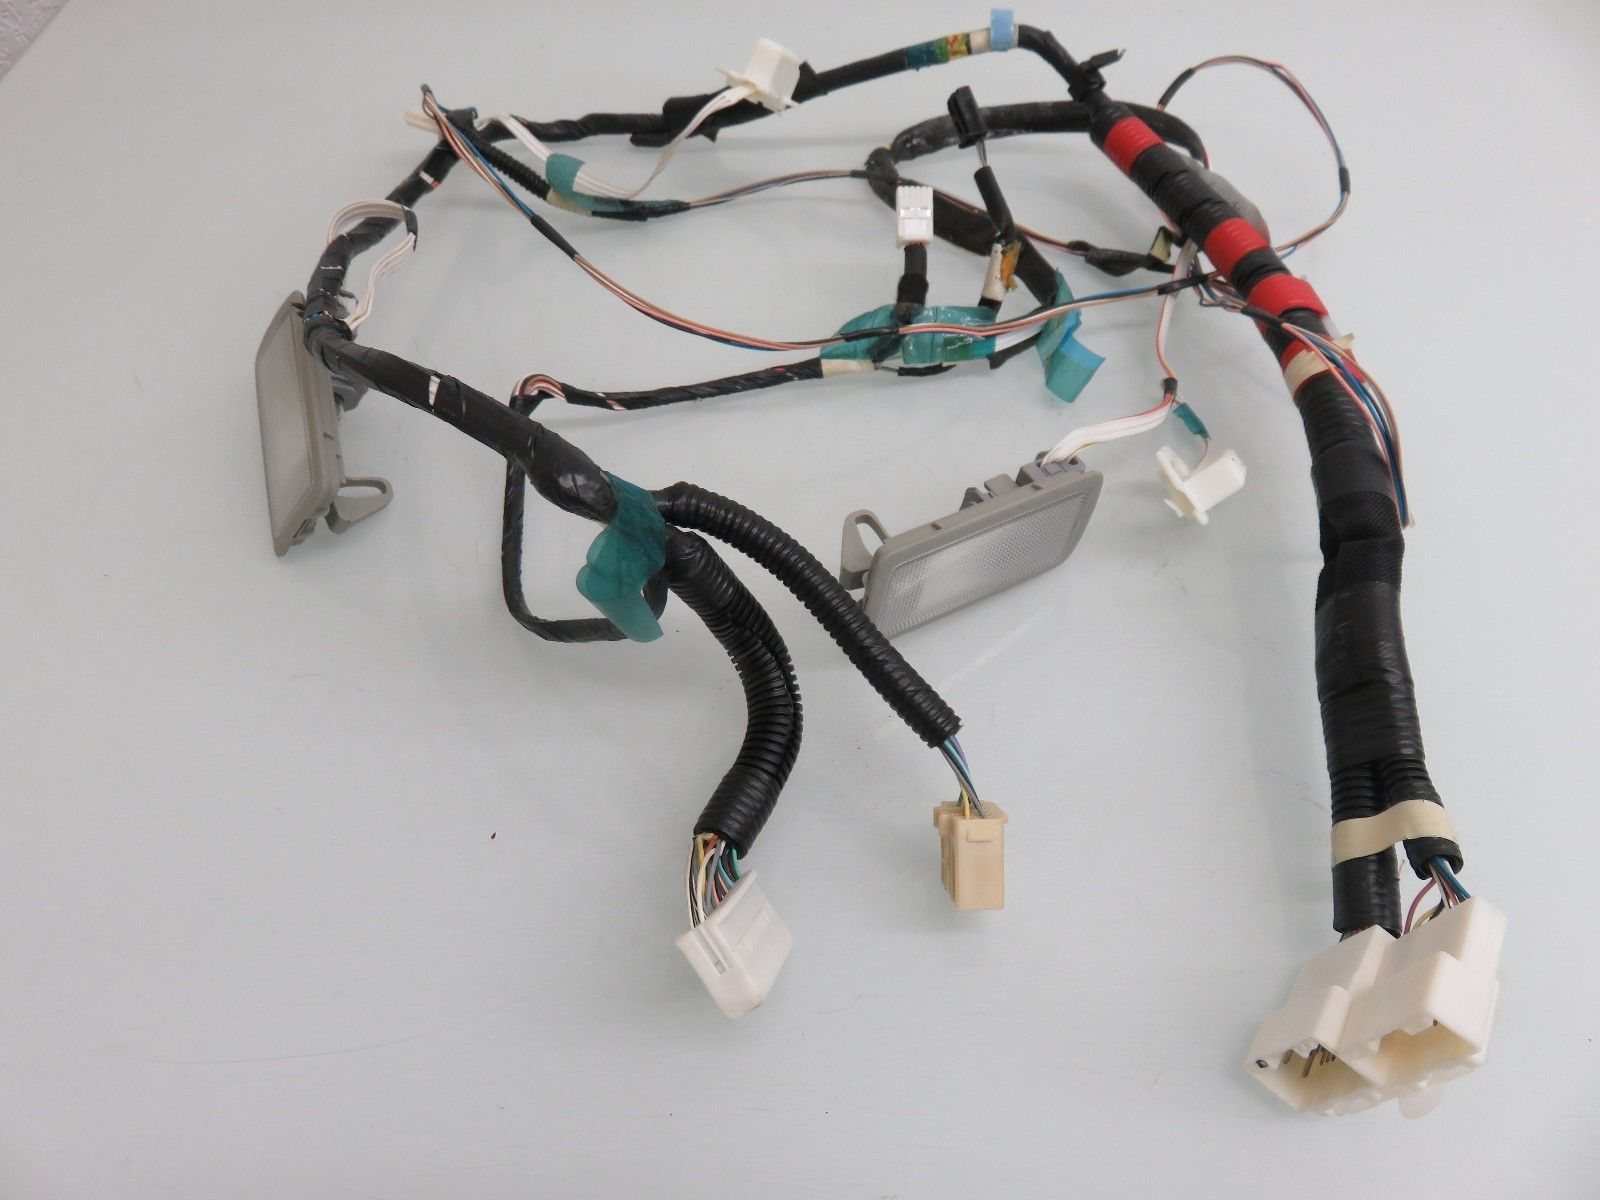 06 13 Lexus Is250 Is350 Front Roof Wiring Harness Cable W Courtesy Light Oem